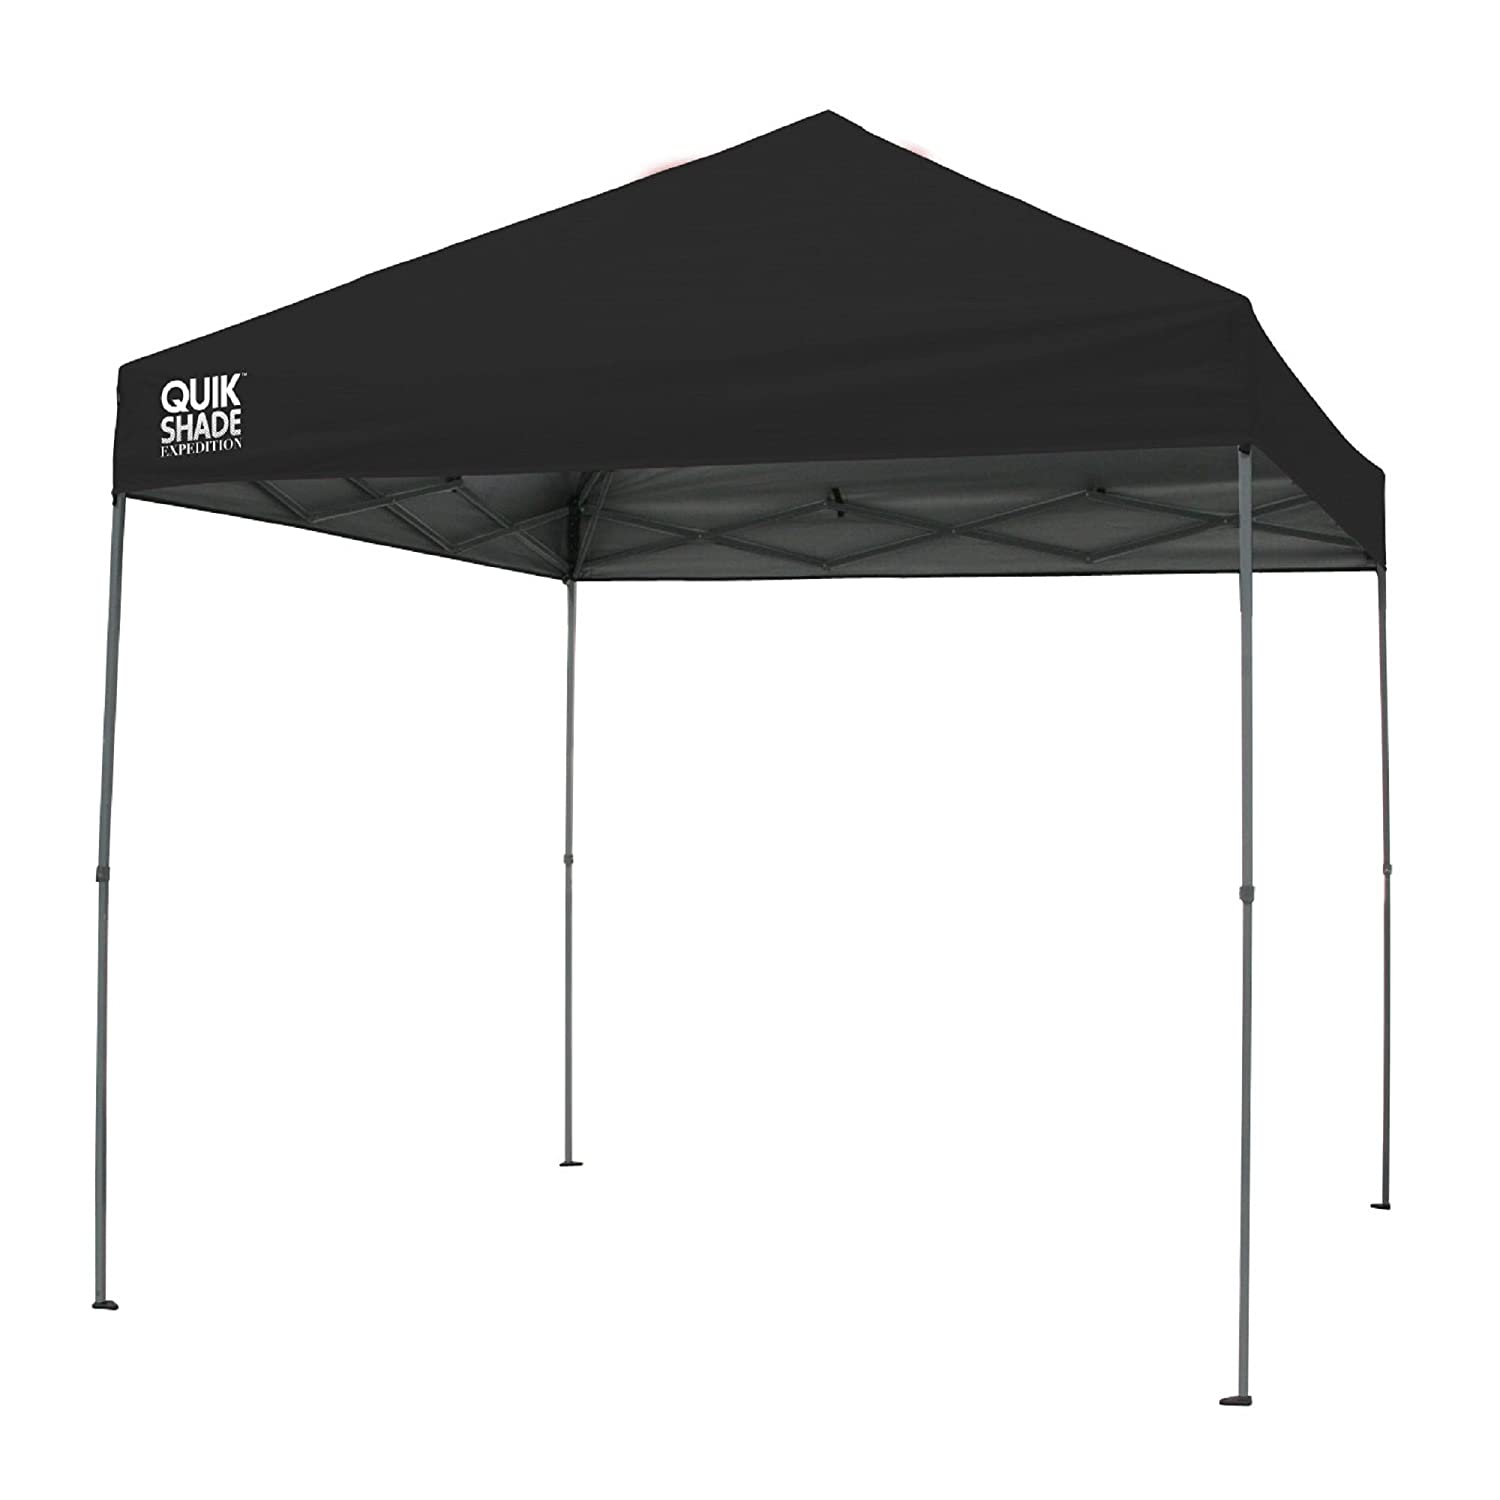 Quik Shade Expedition EX100 10'x10' Instant Canopy Shelter Logic 158997